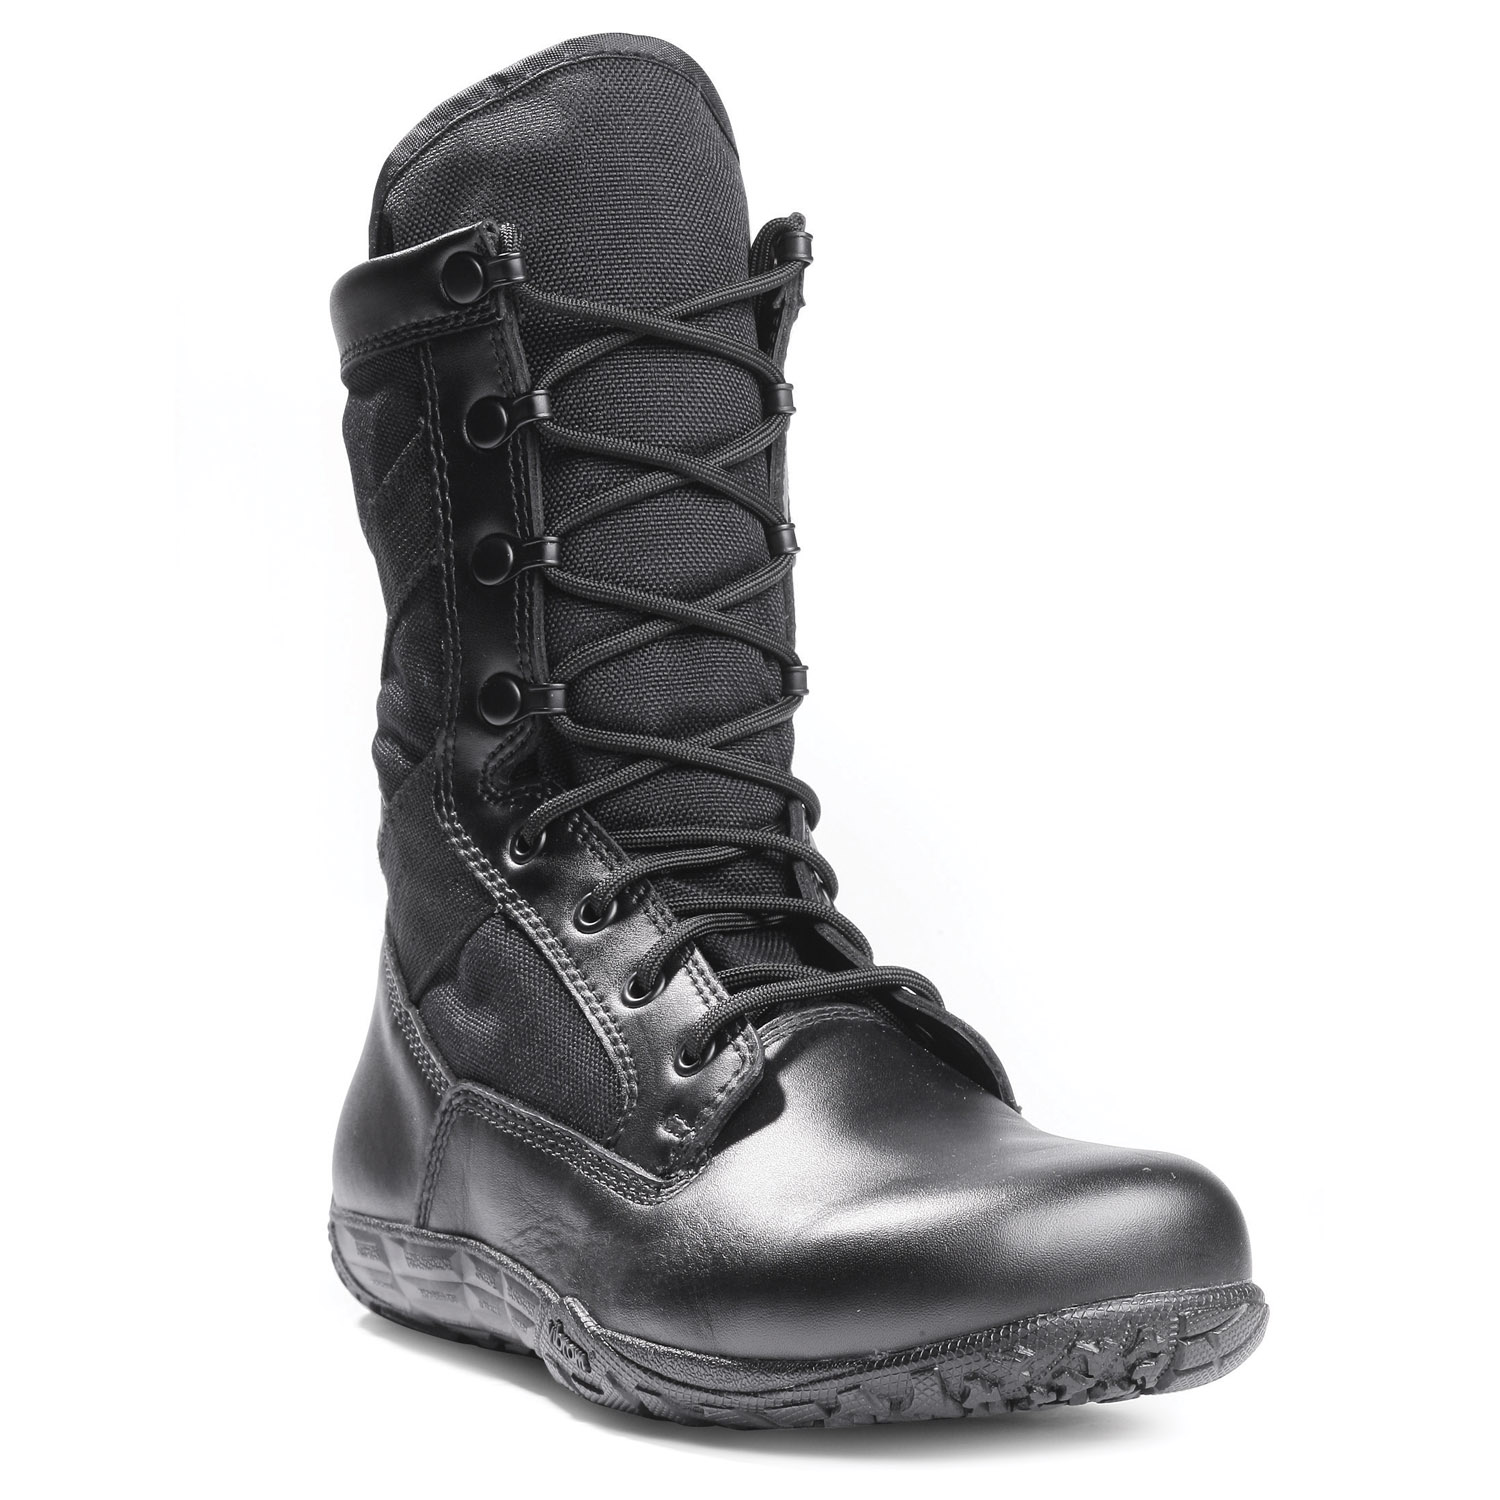 Tactical Research Mini Mil Minimalist 8 Inch Duty Boots At